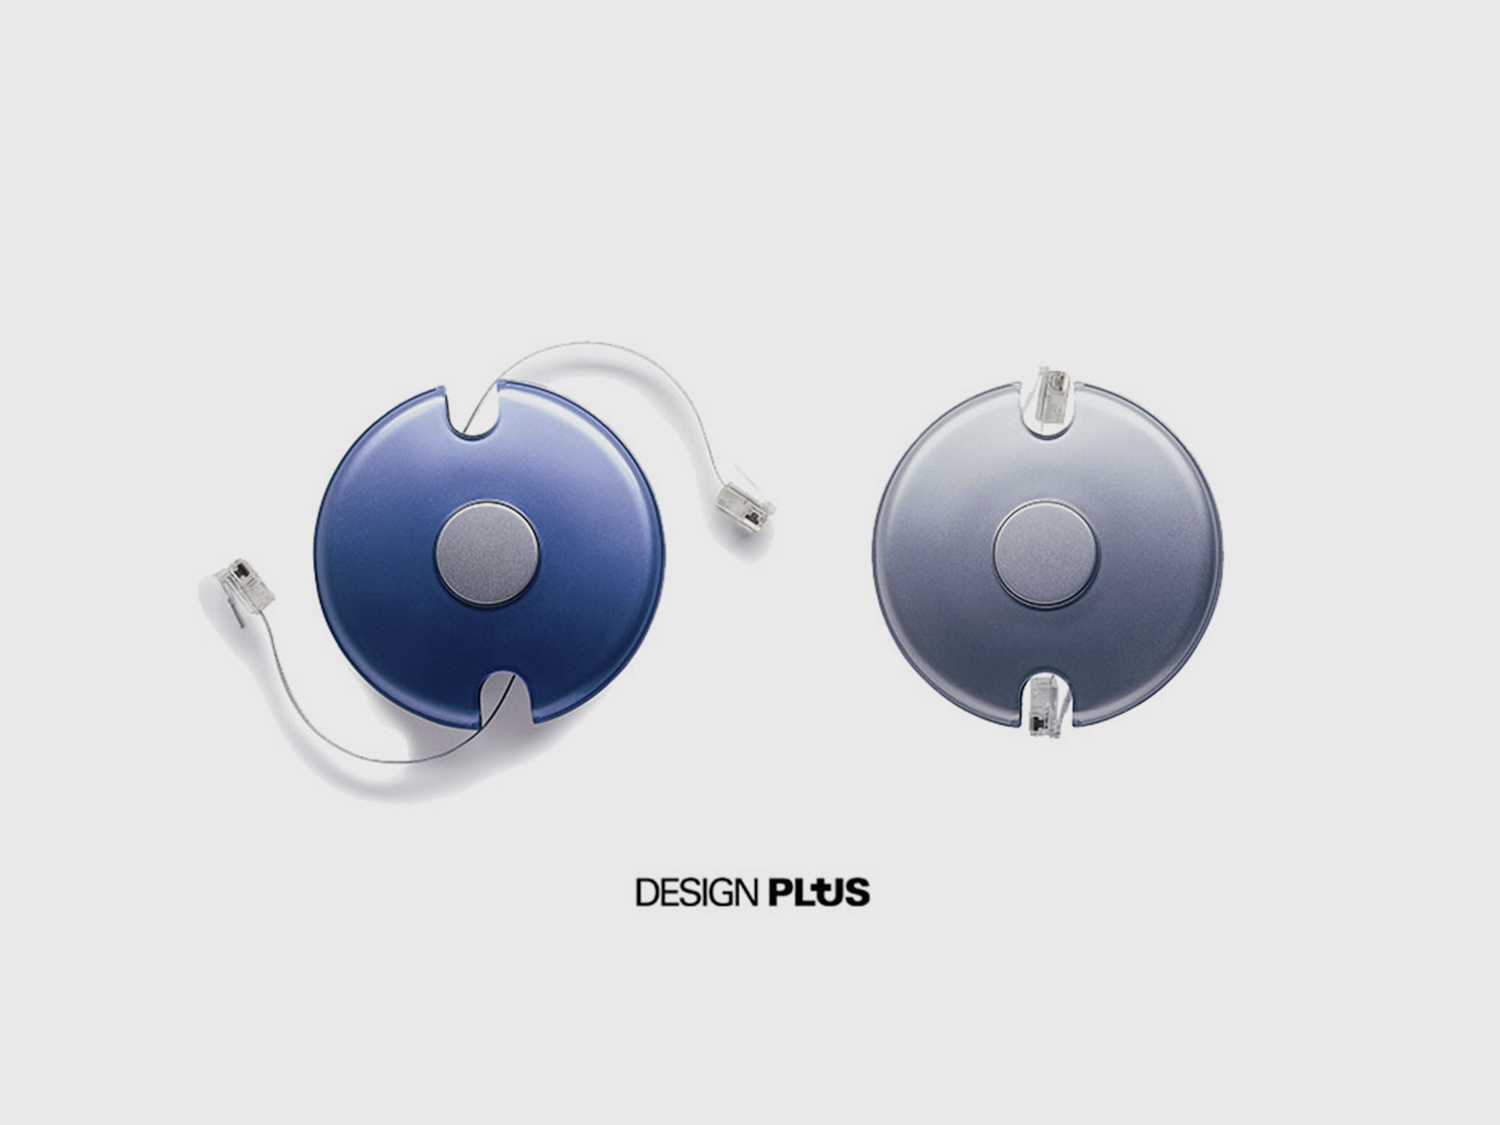 OYO. Telephone and Computer Collection. Designed for Lexon. Design Plus 2003